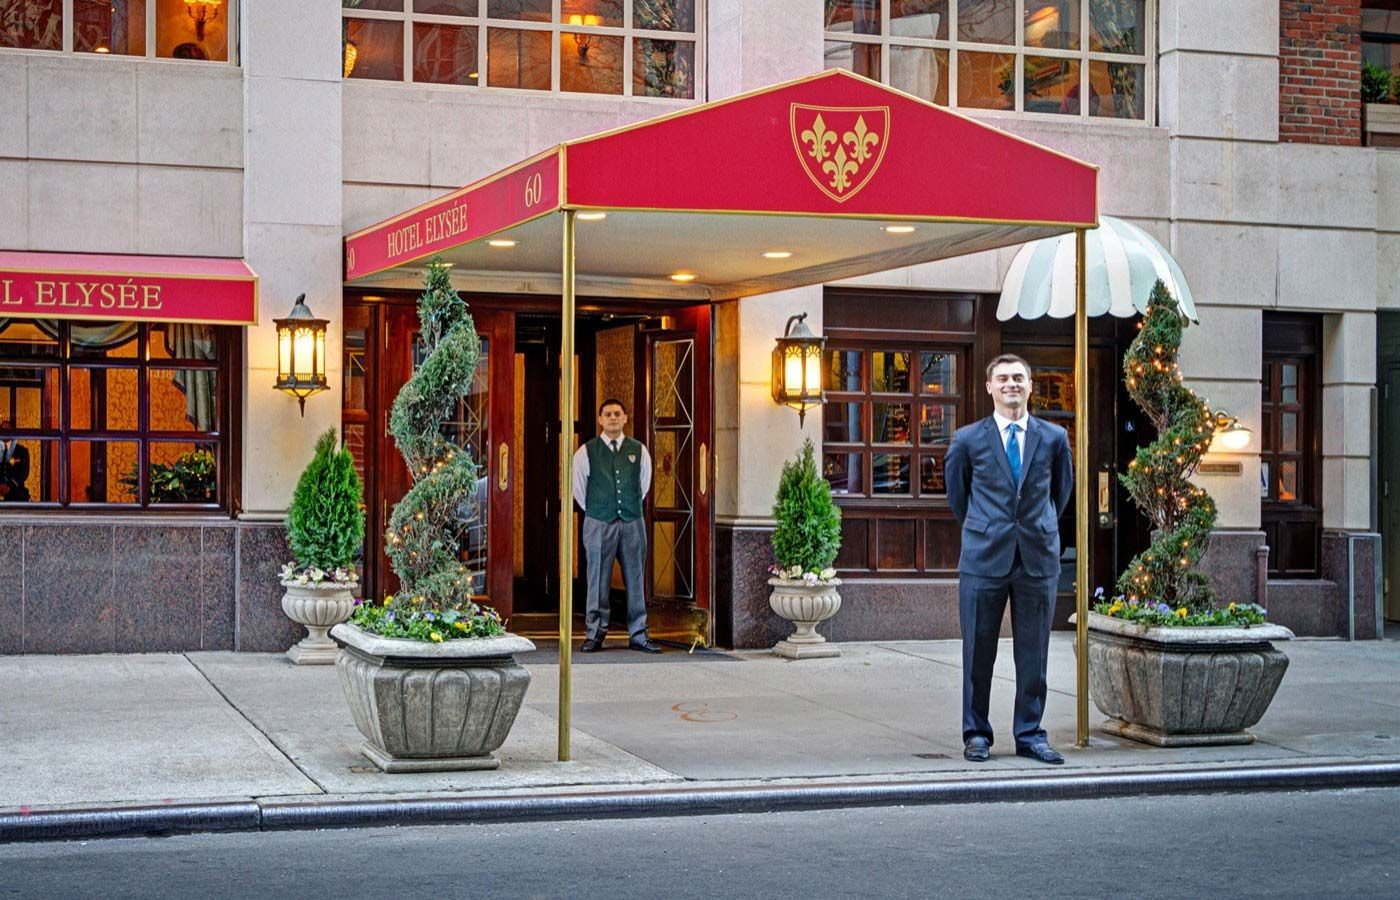 Living large in Don Draper\'s New York: The Hotel Elysee New York ...